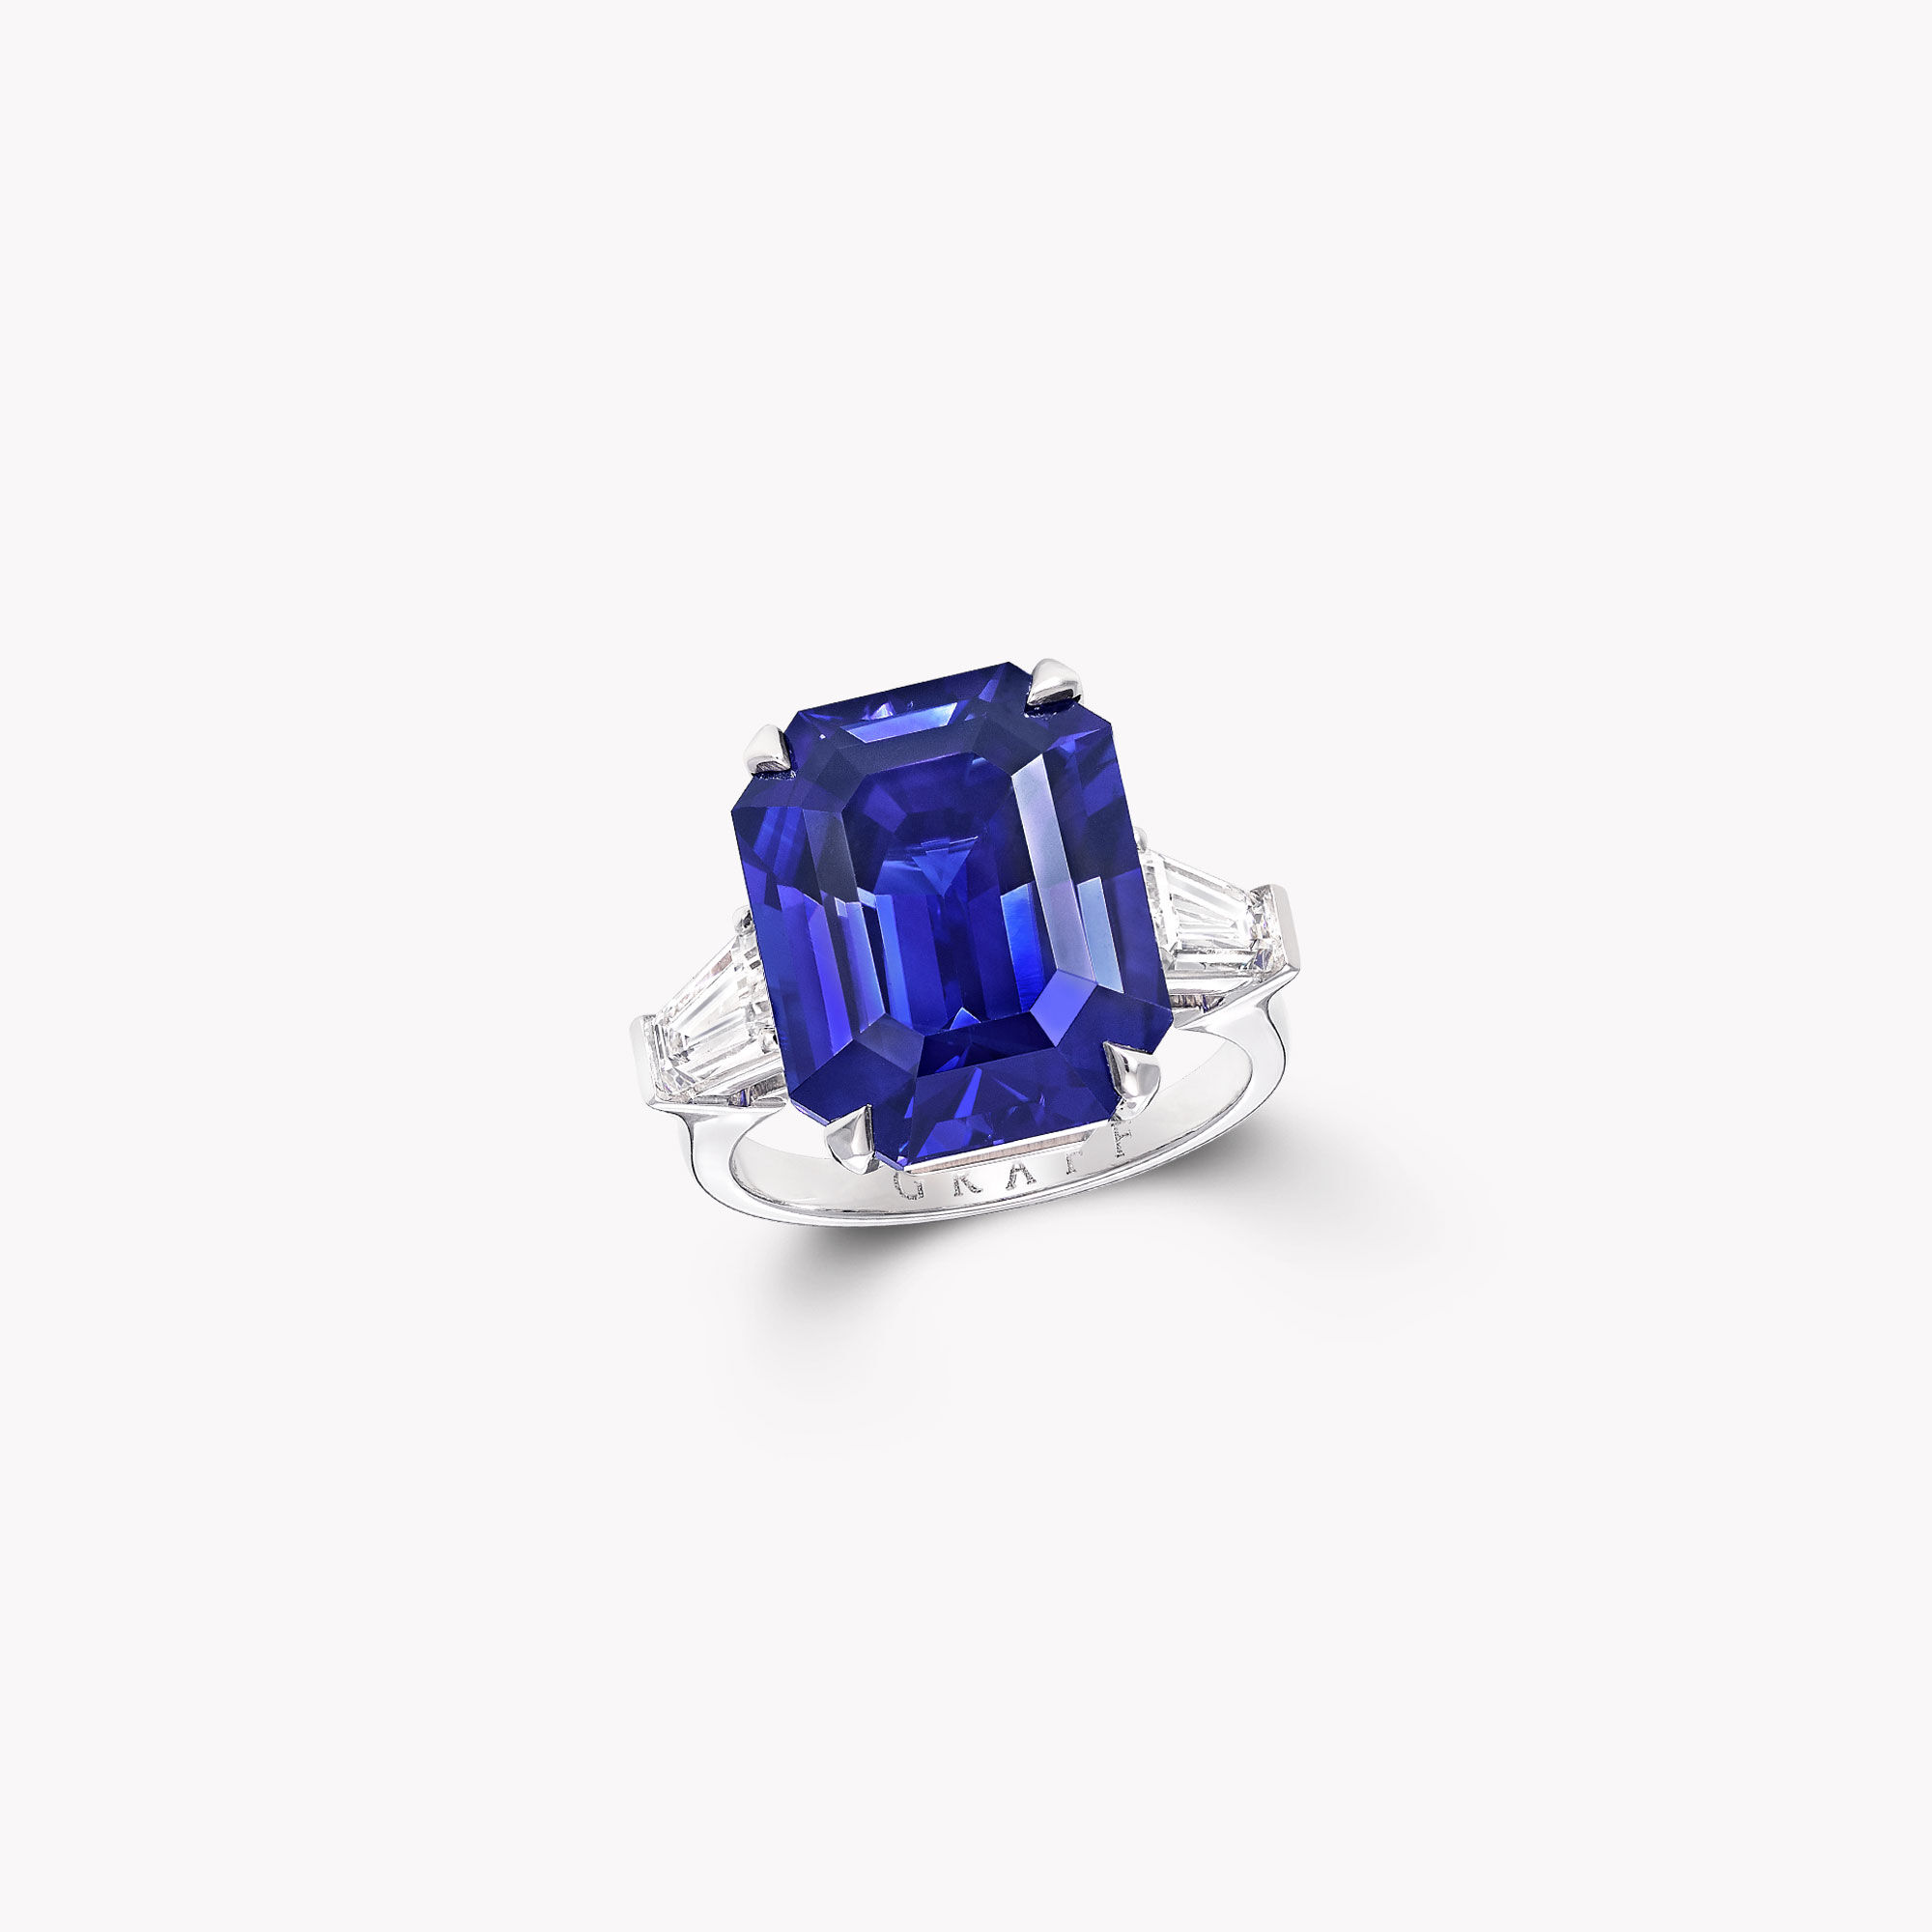 A Graff emerald cut sapphire and white diamond high jewellery ring